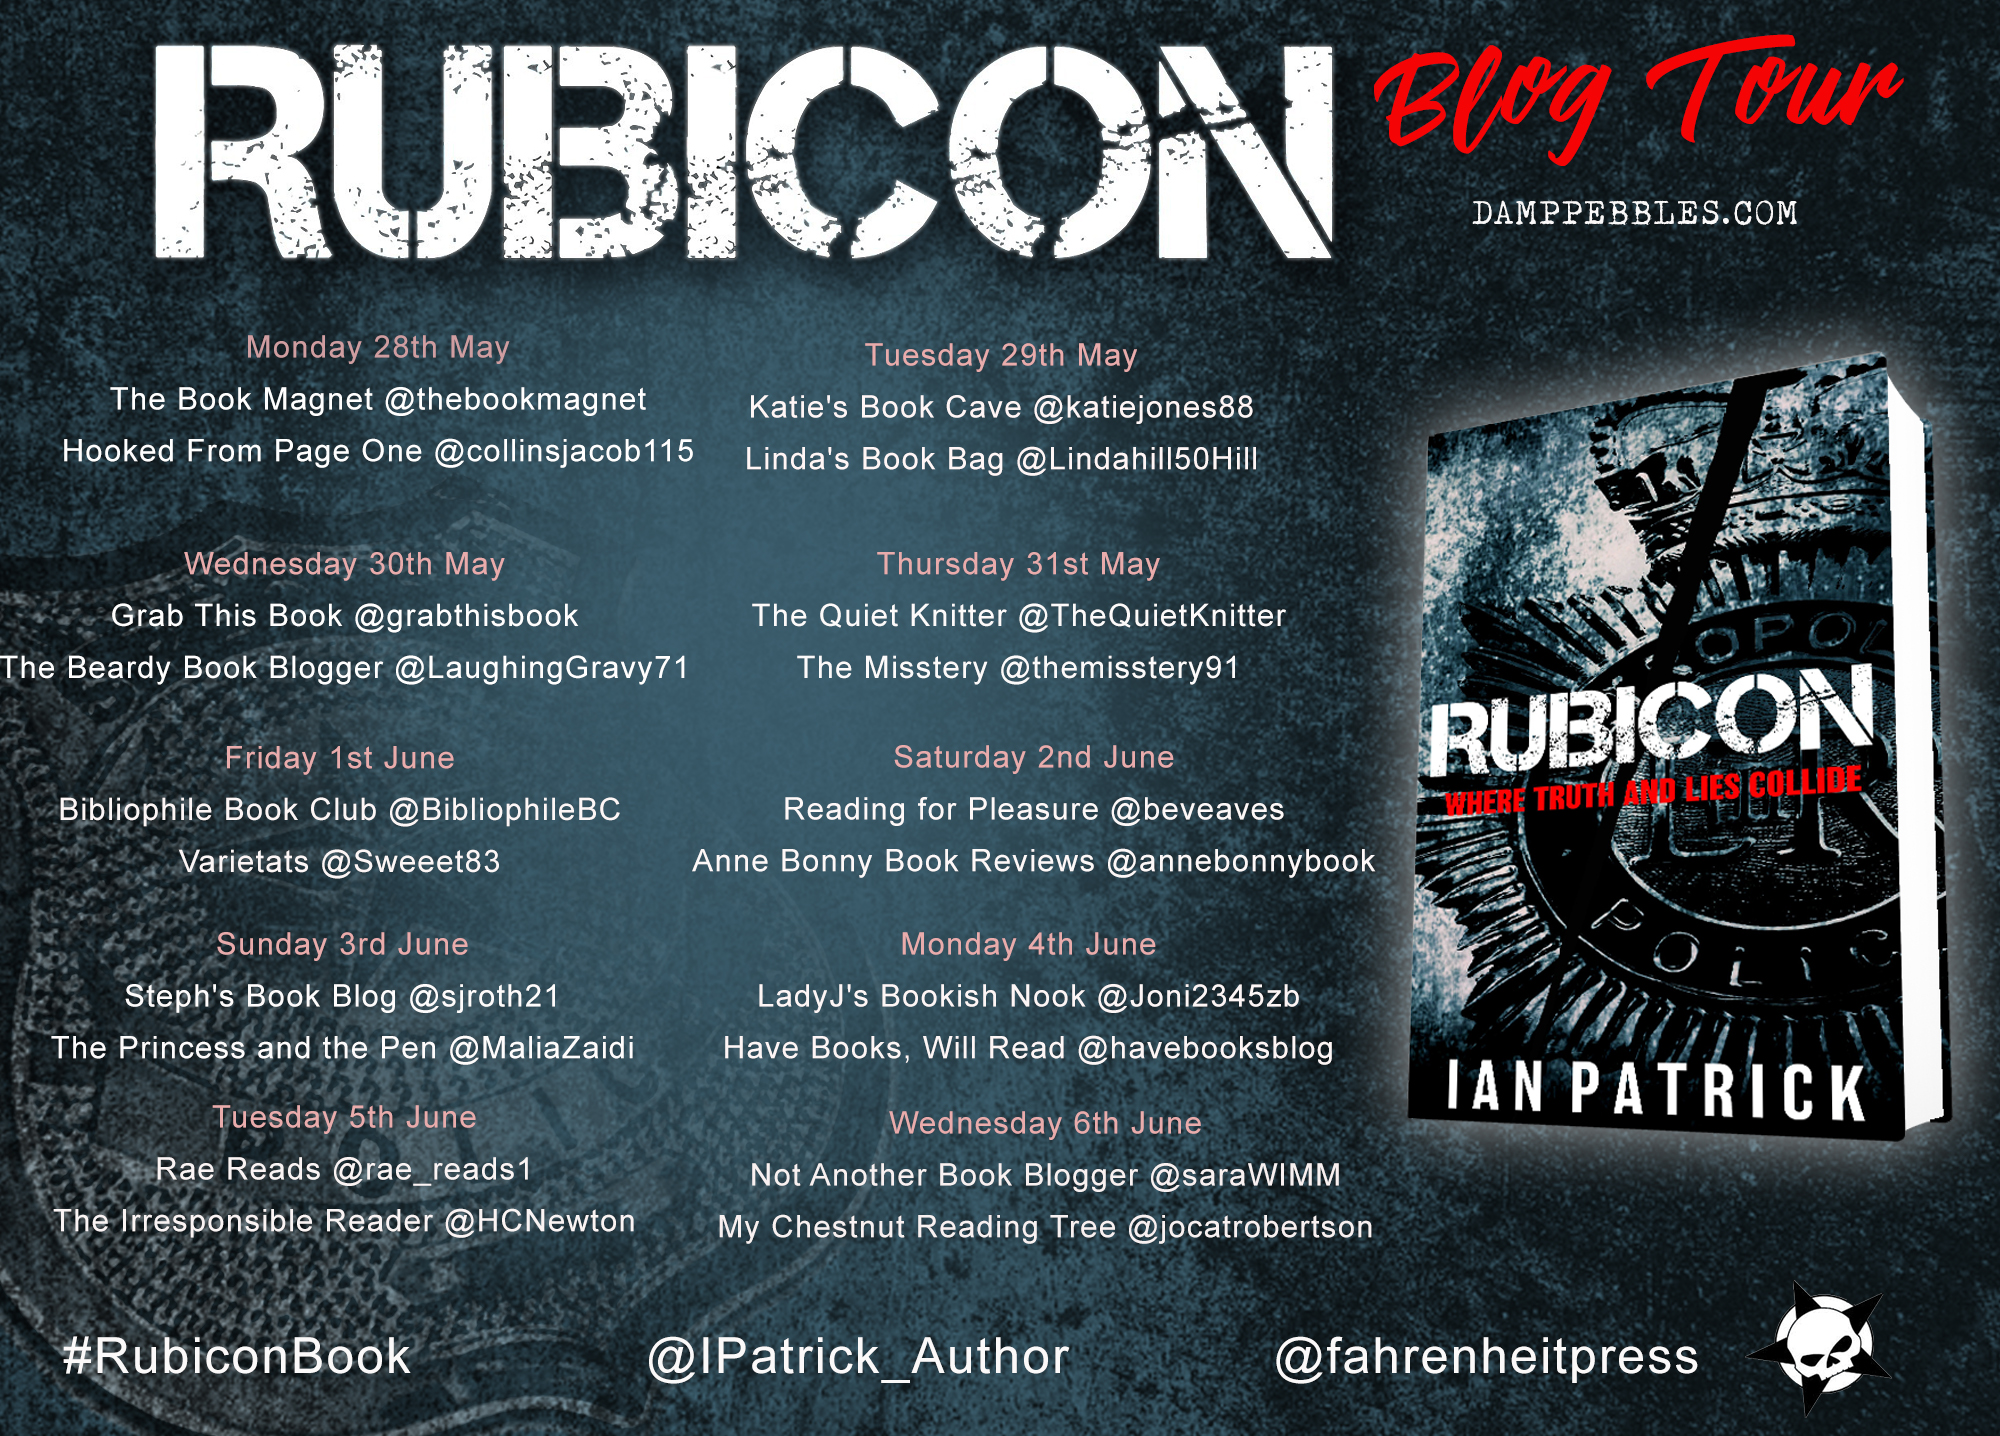 Examplary Rubicon Is Published By Fahrenheit Press You Can Order A Copy Grab This Book Page Books You Should Be Page One Bookstore Singapore Page One Bookstore Harbour City photos Page One Books